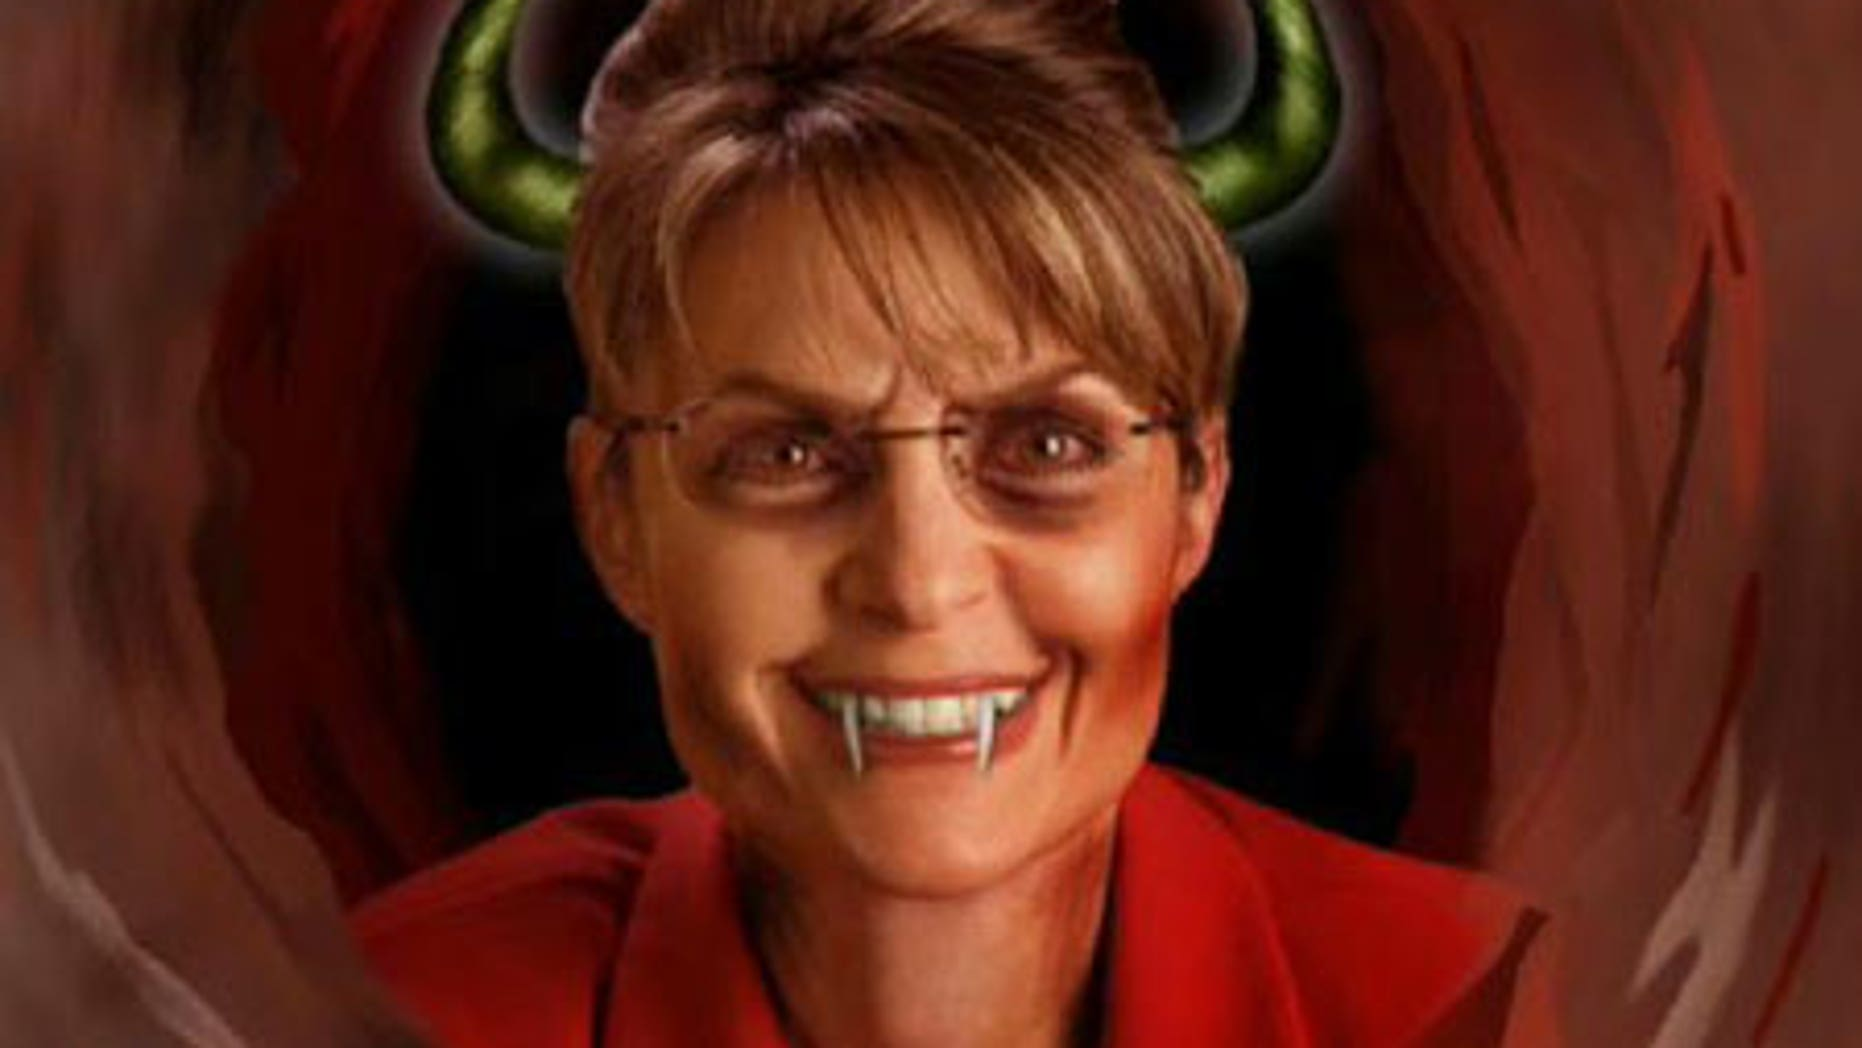 This just in from the future: The mainstream media reveal that Sarah Palin is, in fact, the devil